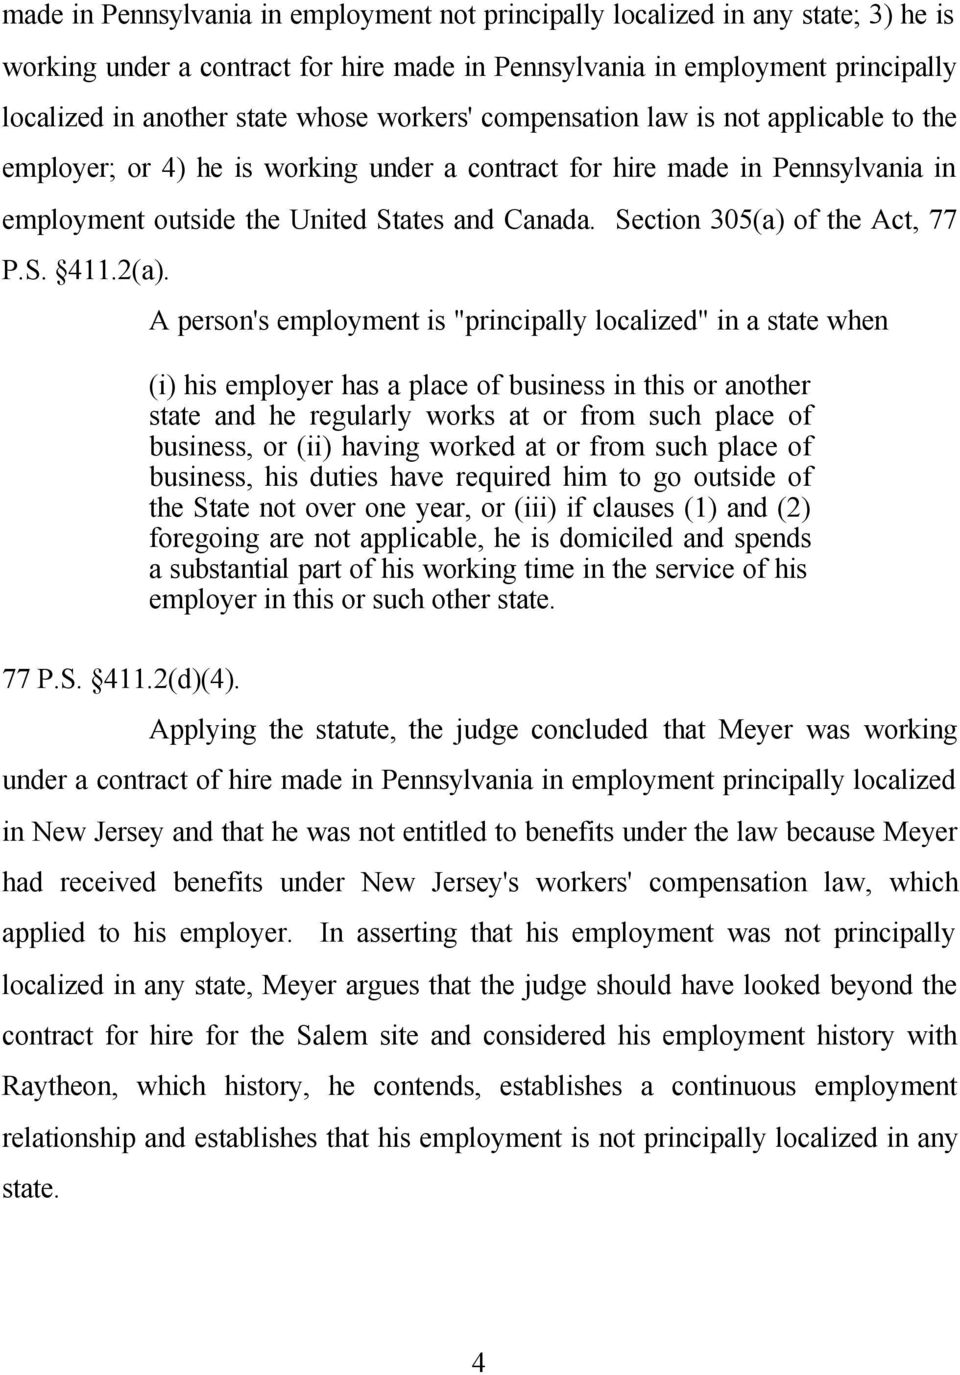 Section 305(a) of the Act, 77 P.S. 411.2(a).